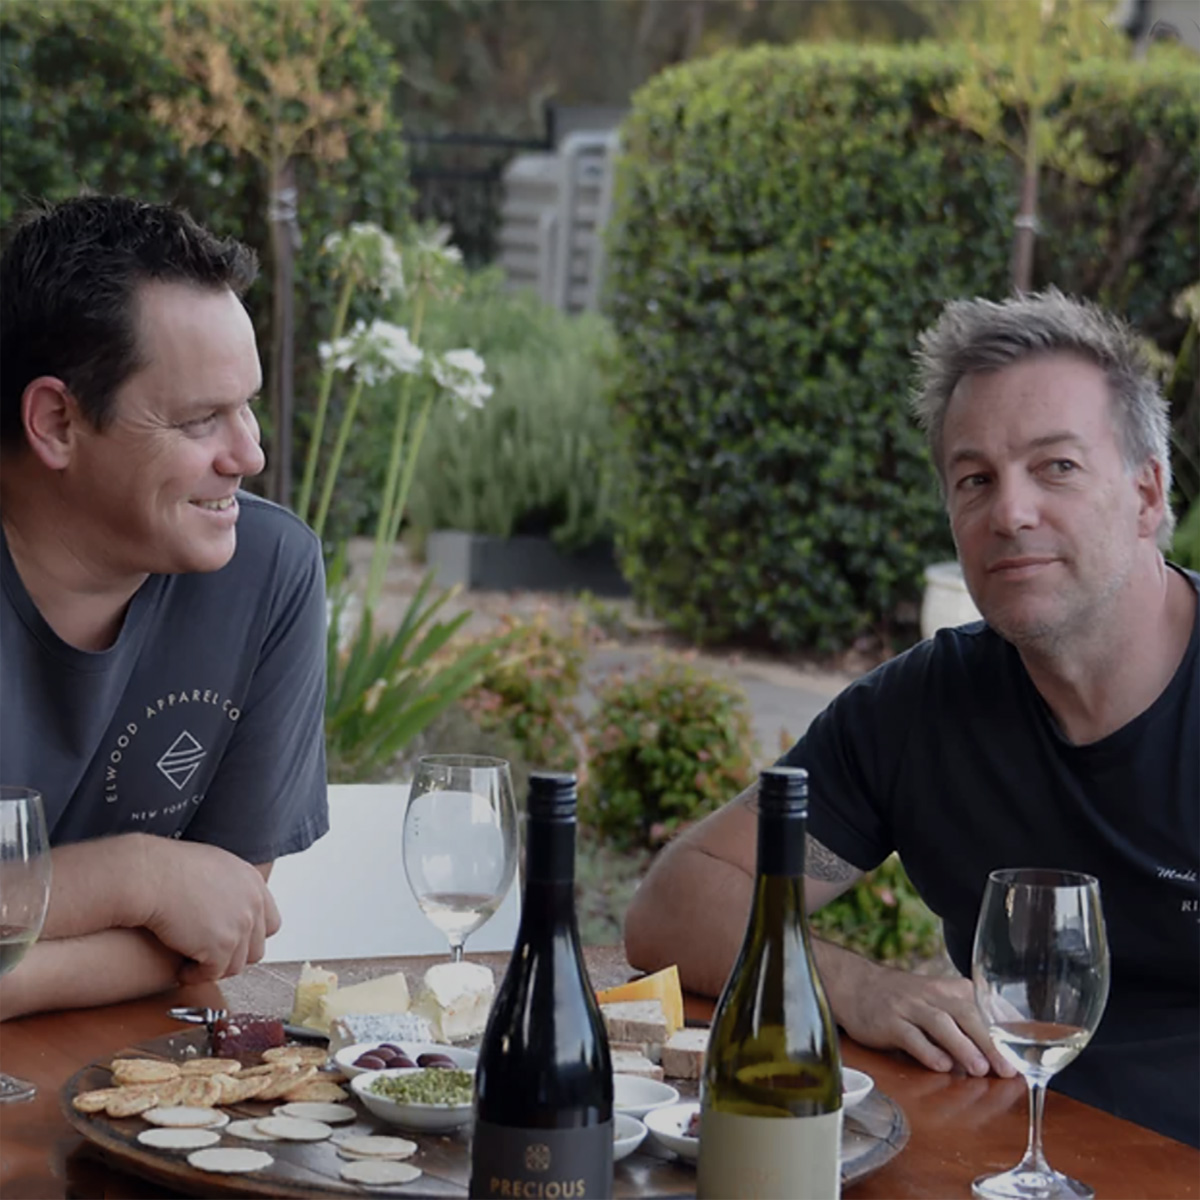 Precious Little Winemakers Adam Smith and Marty O'Flaherty having wines over lunch